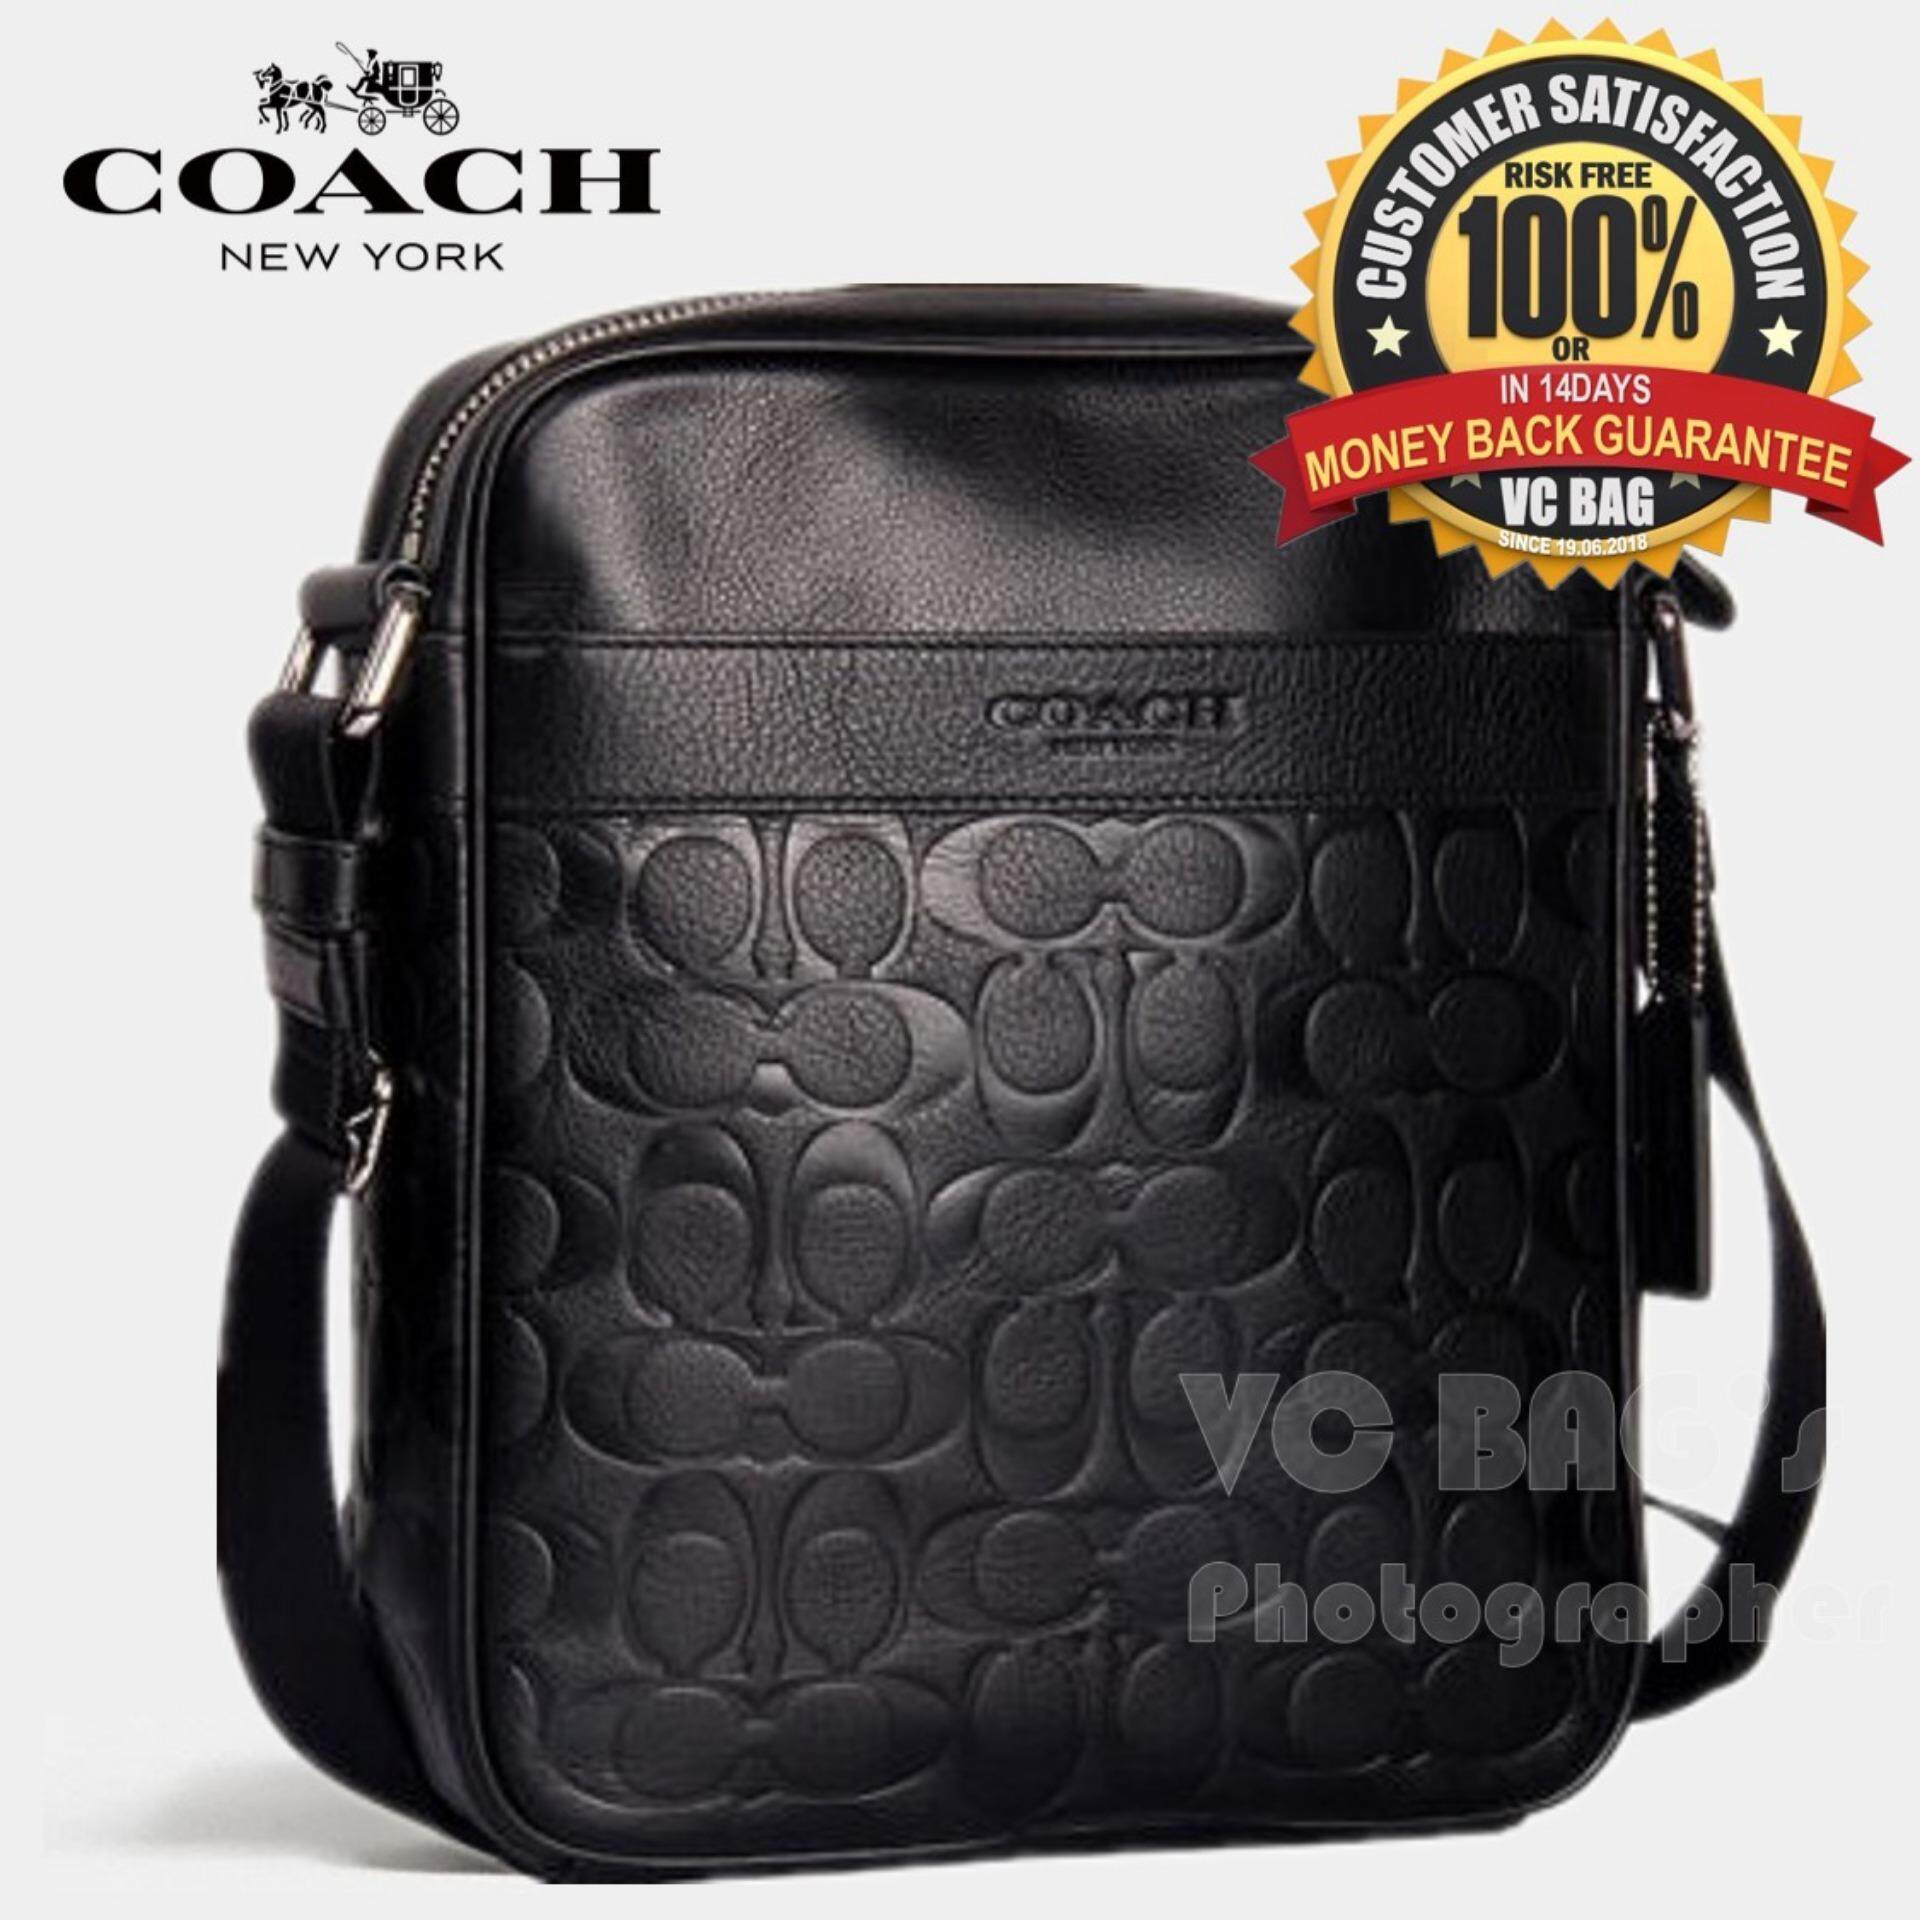 98ccc3b760 COACH F71819 Men s Charles Flight Bag in Signature Embossed Leather  Black